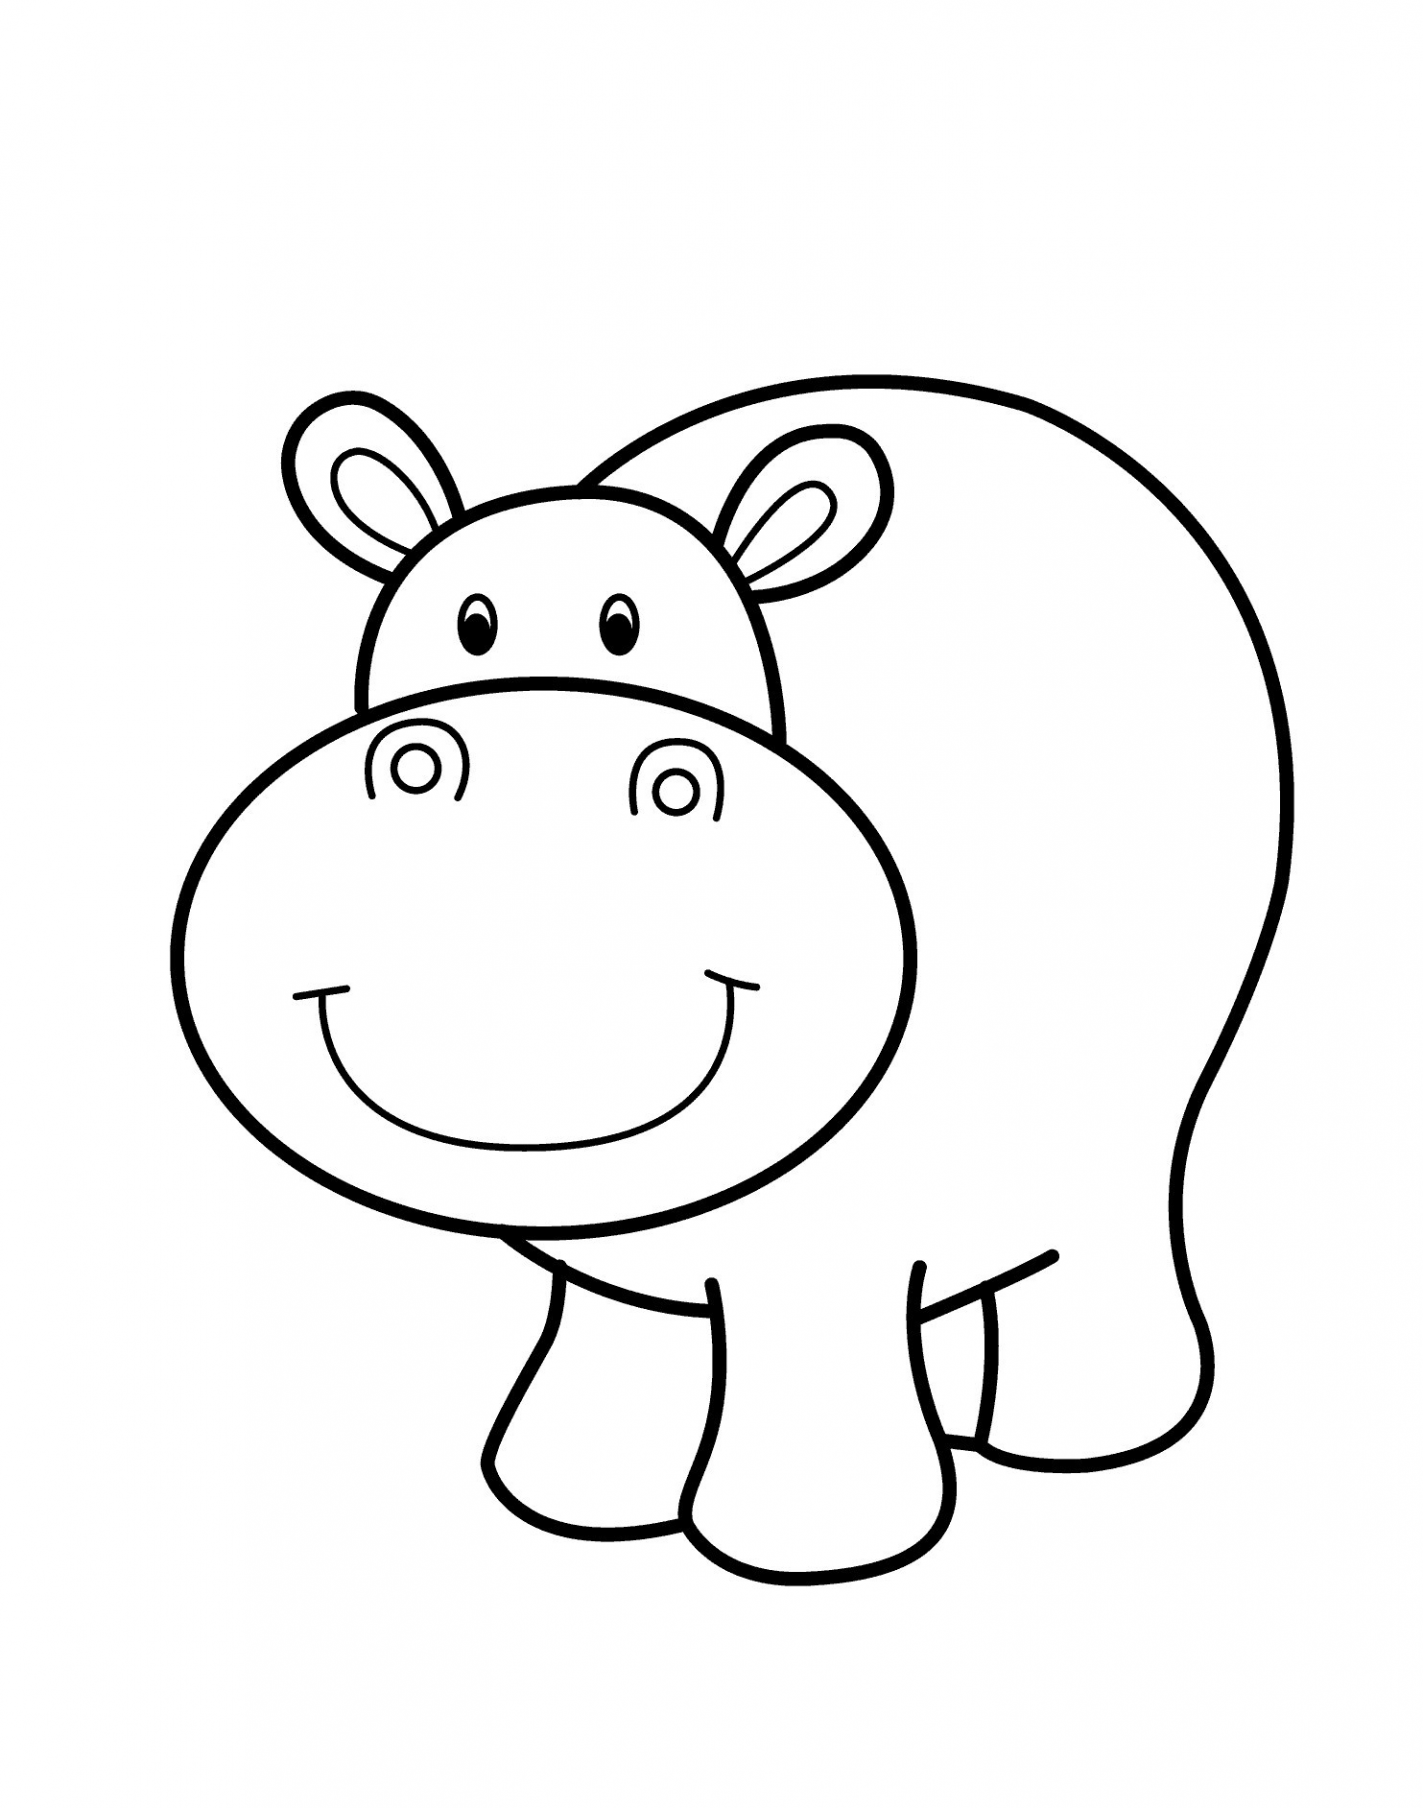 1423x1808 Cartoon Animal Drawings For Kids